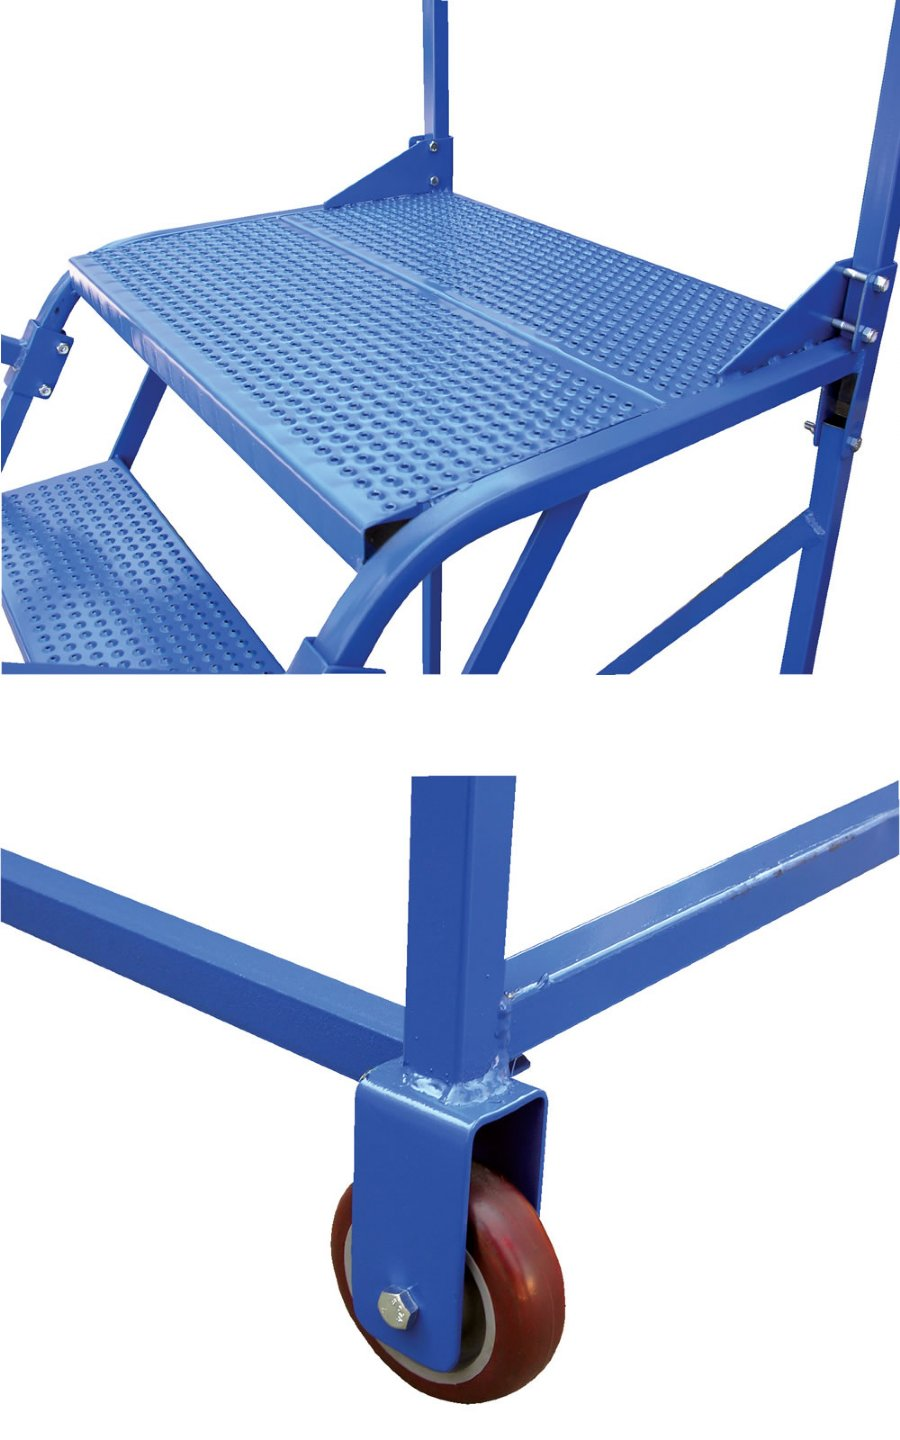 6 Step Portable Maintenance Ladders With Perforated Steps